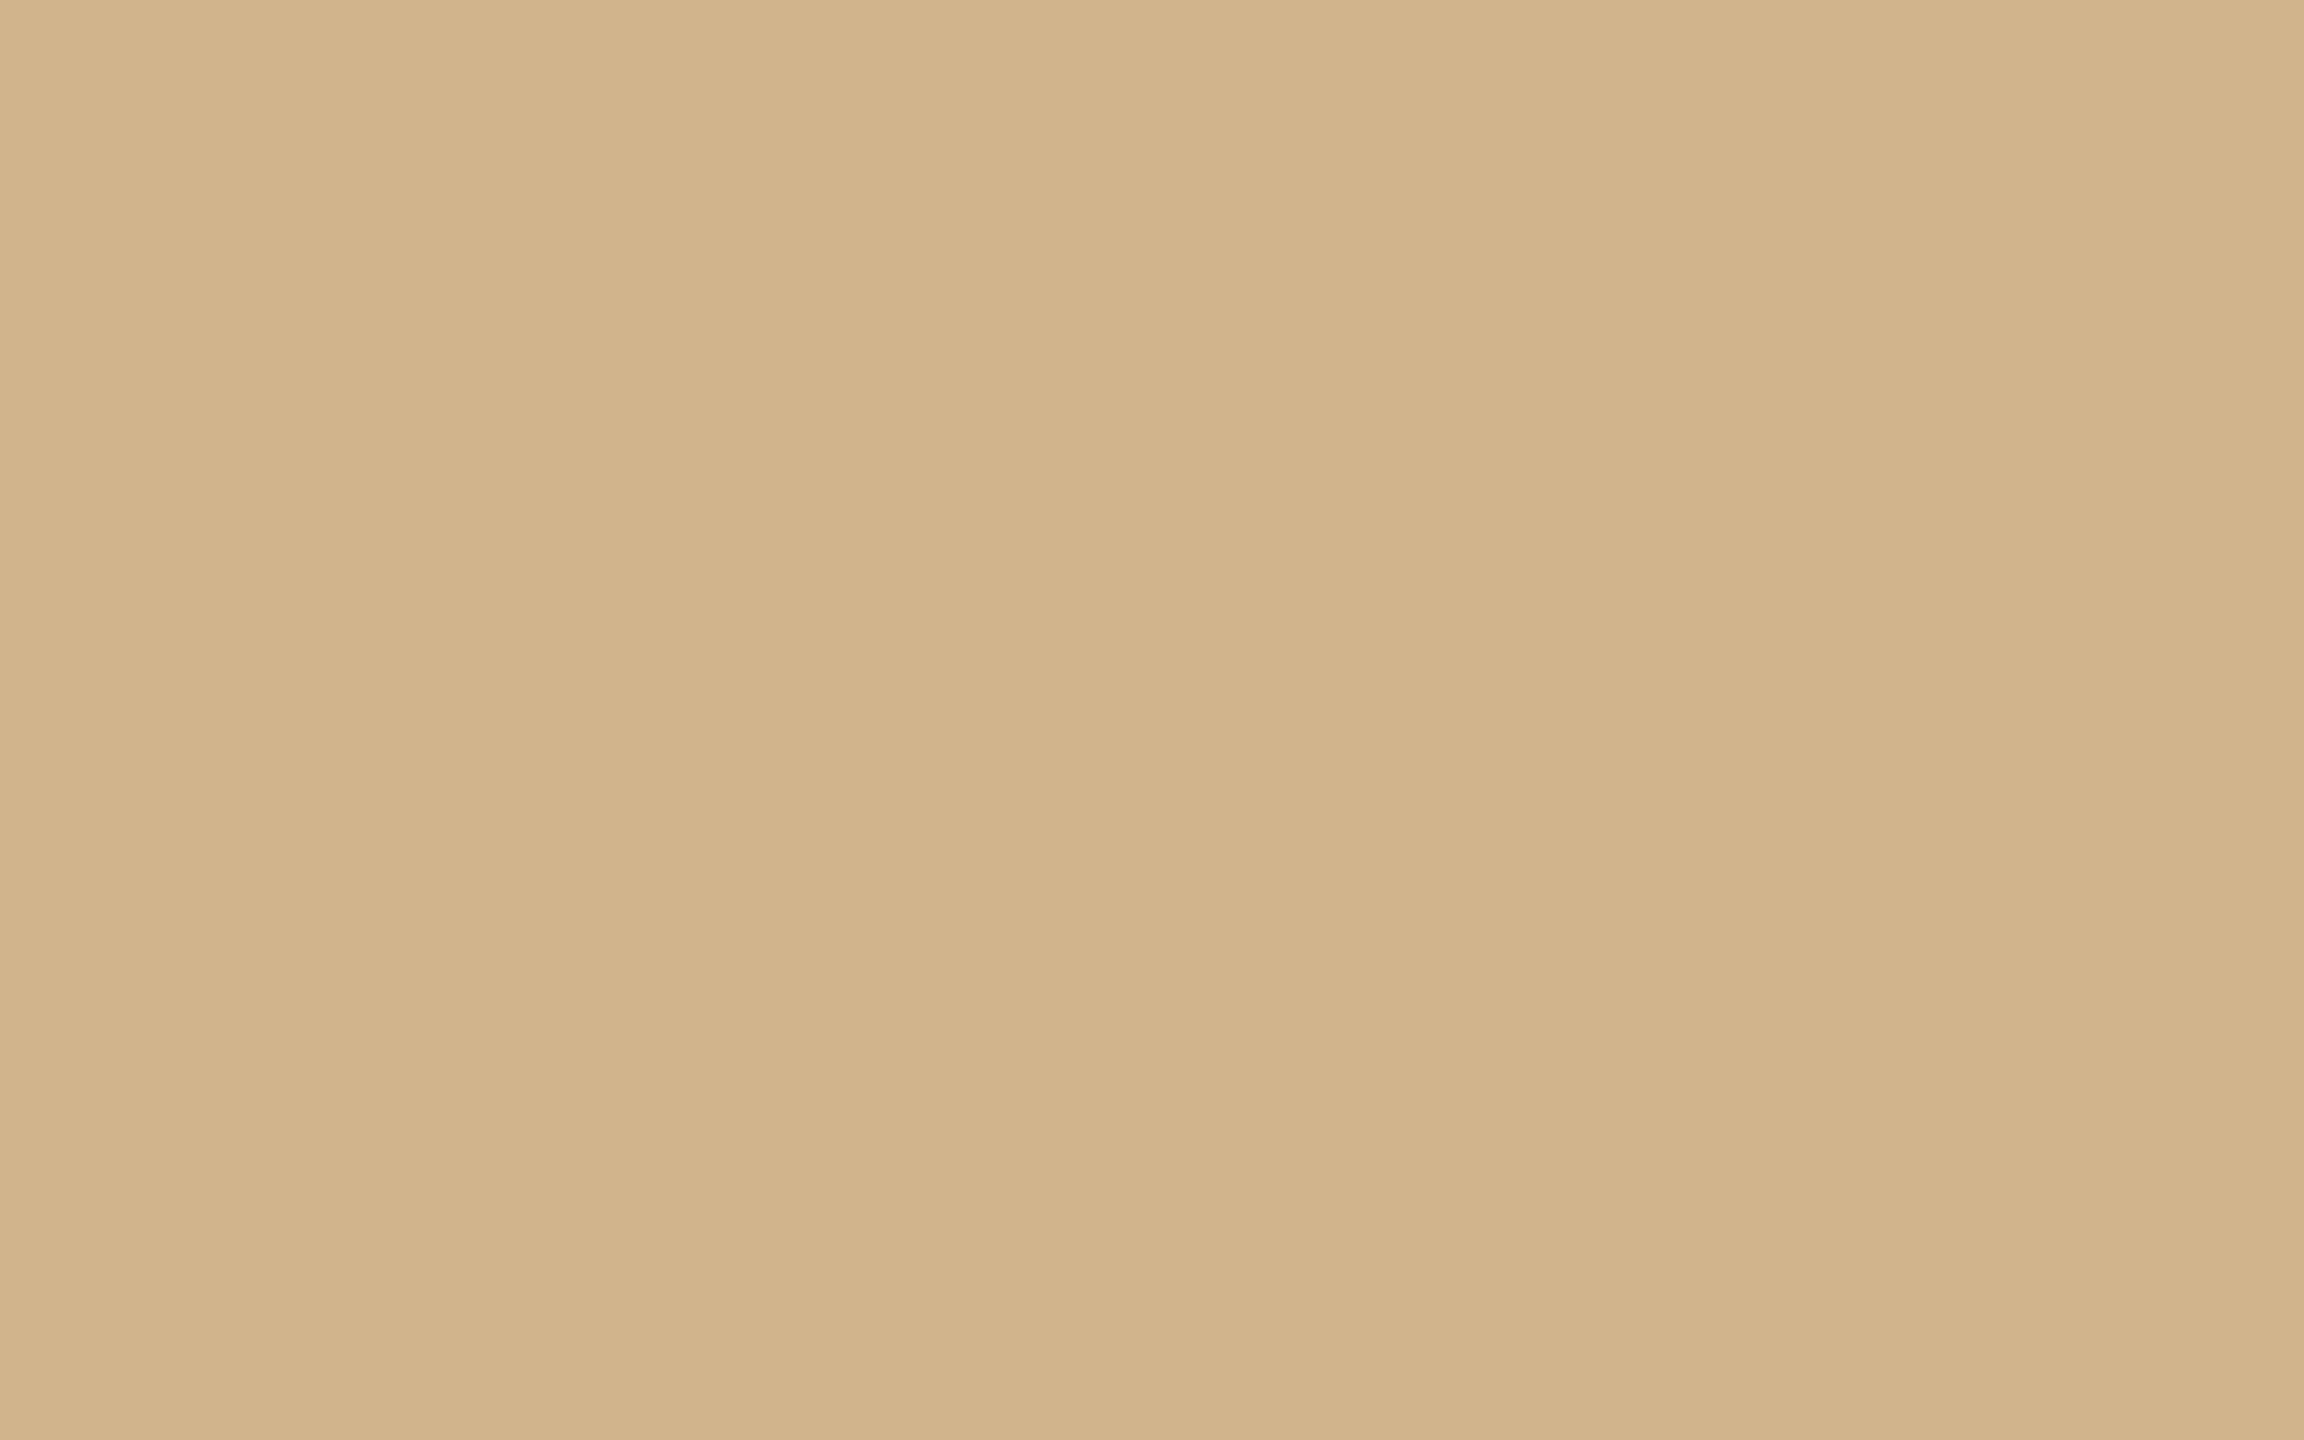 2304x1440 Tan Solid Color Background